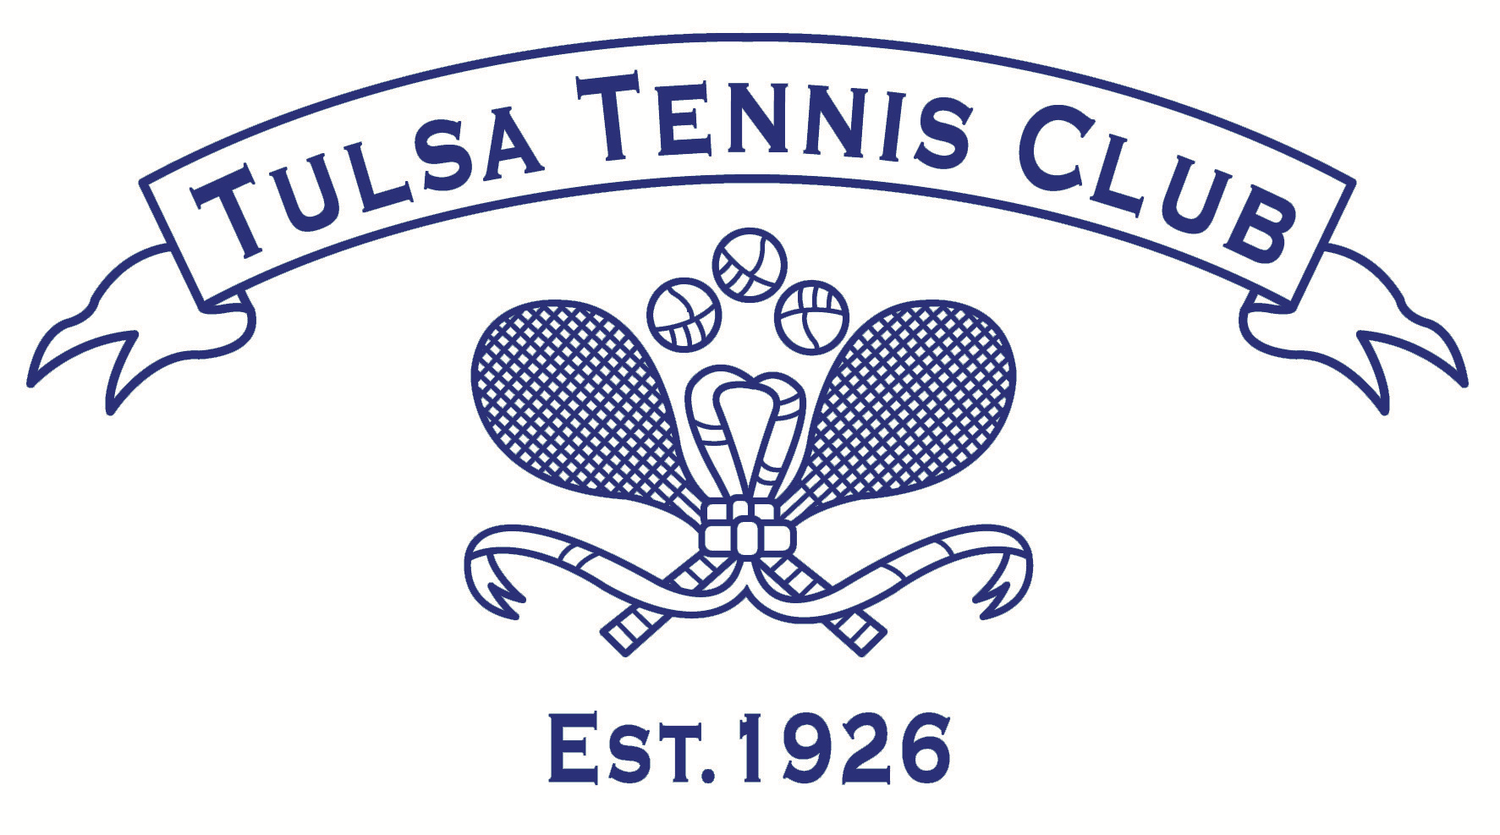 The Tulsa Tennis Club